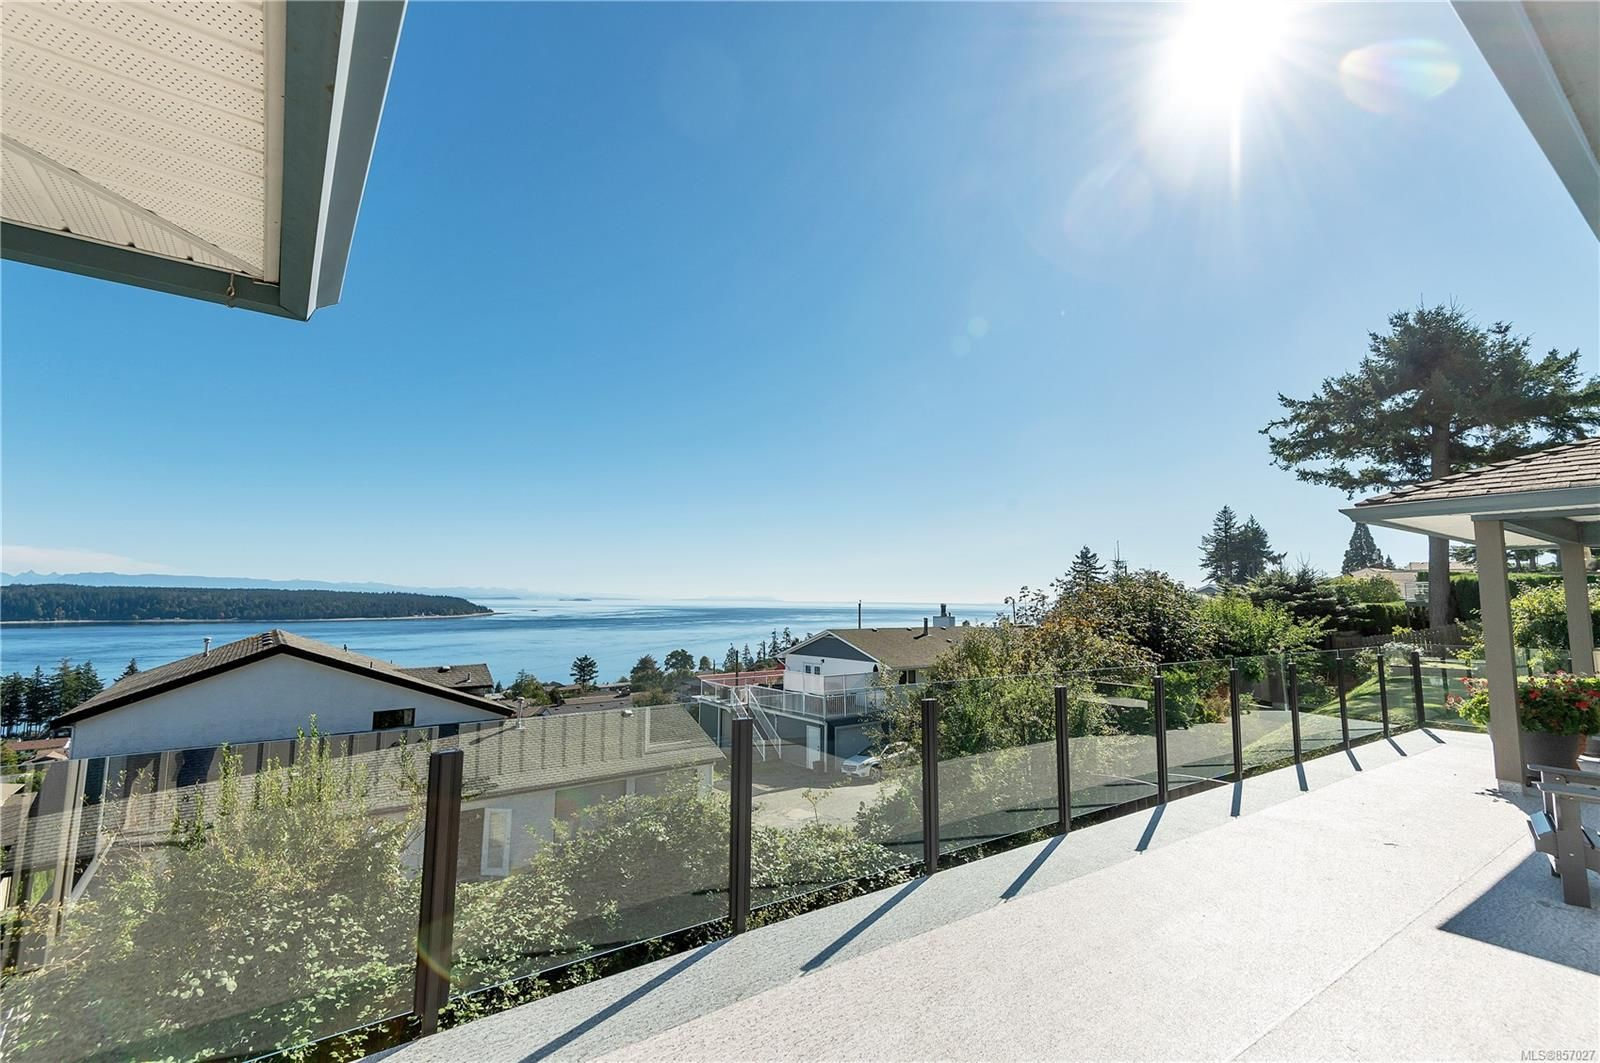 Photo 53: Photos: 253 S Alder St in : CR Campbell River South House for sale (Campbell River)  : MLS®# 857027